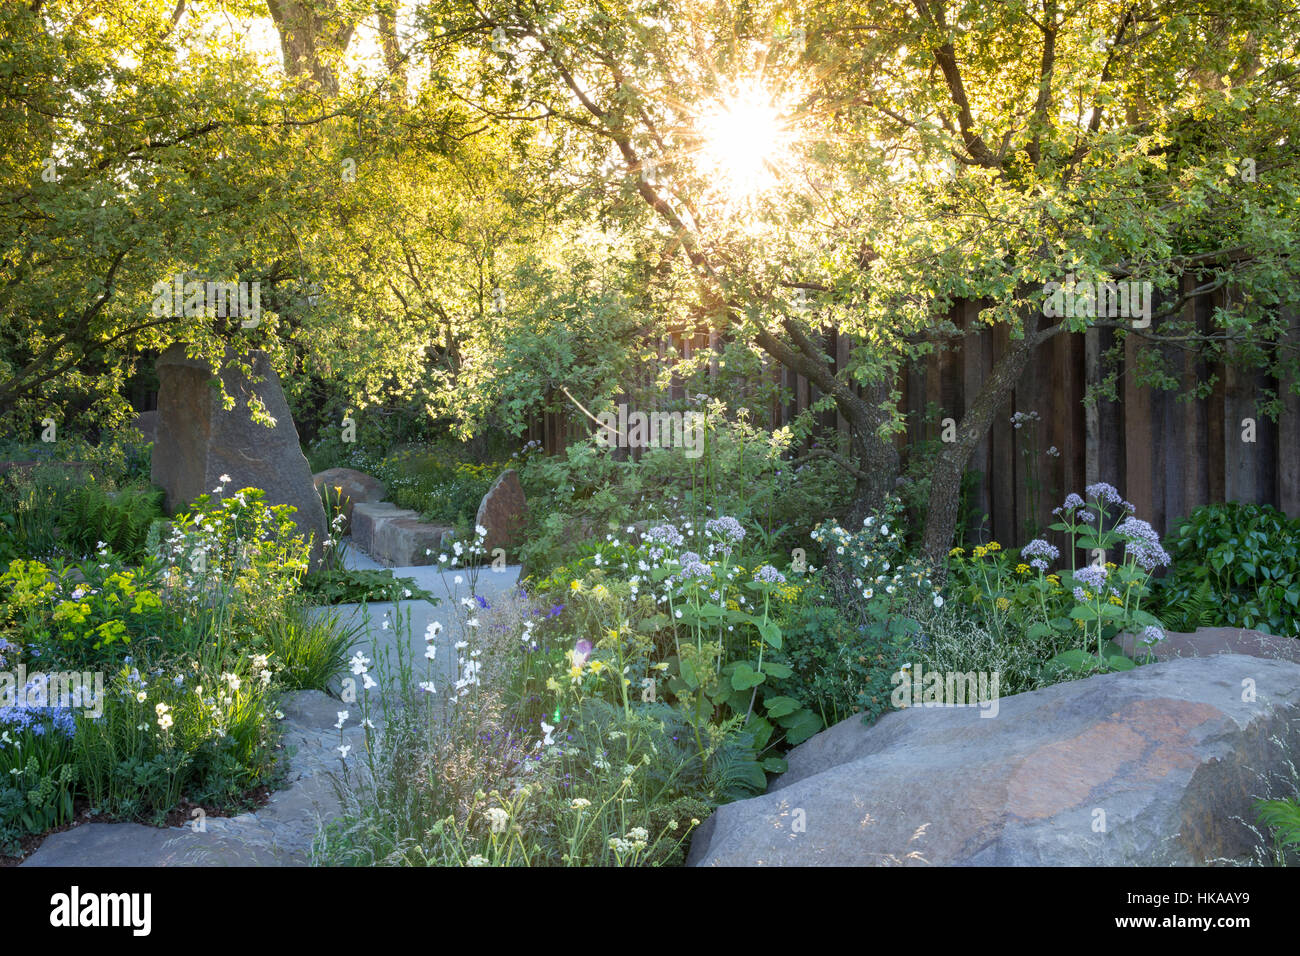 The M&G Garden, Chelsea Flower Show 2016, London: Designer: Cleve West - Stock Image